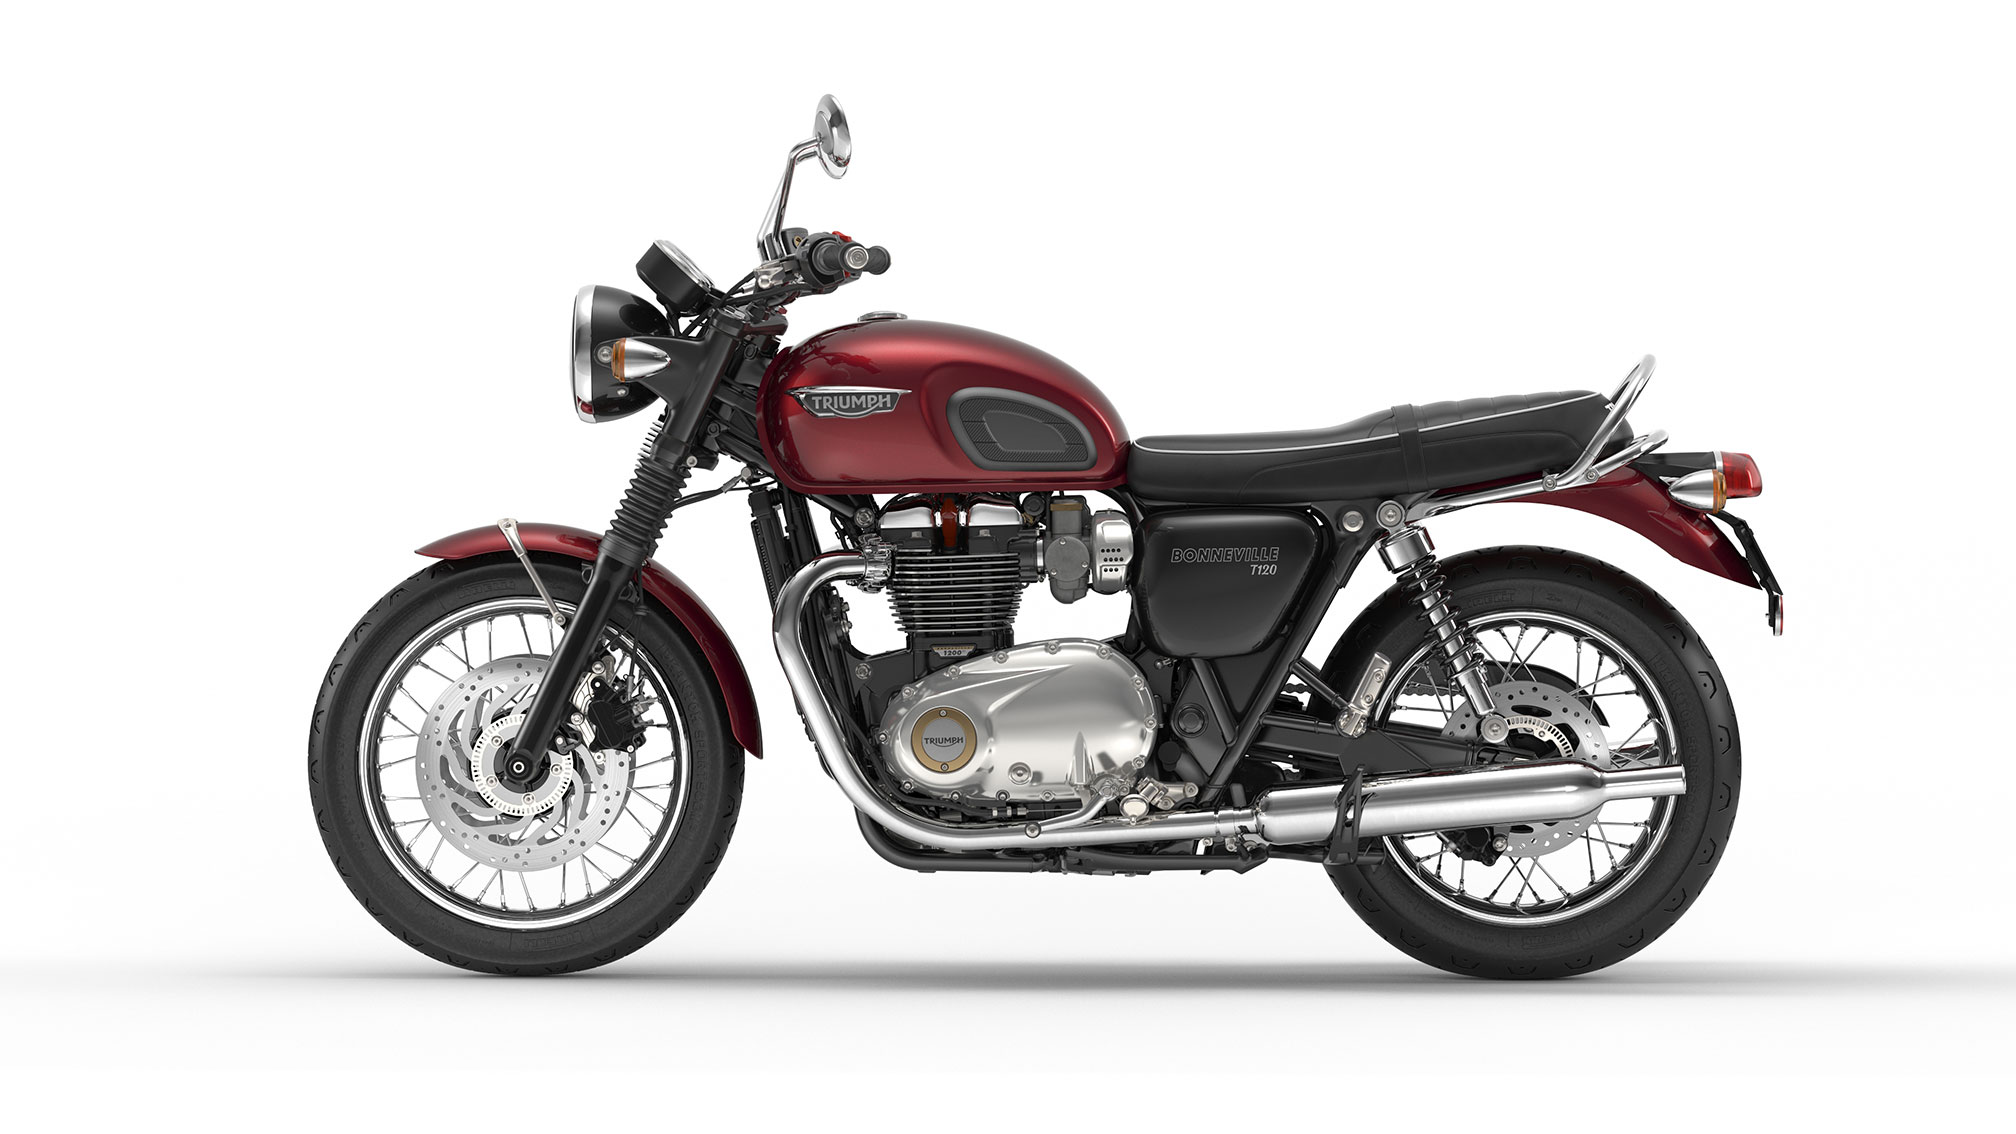 2016 triumph bonneville t120 review. Black Bedroom Furniture Sets. Home Design Ideas